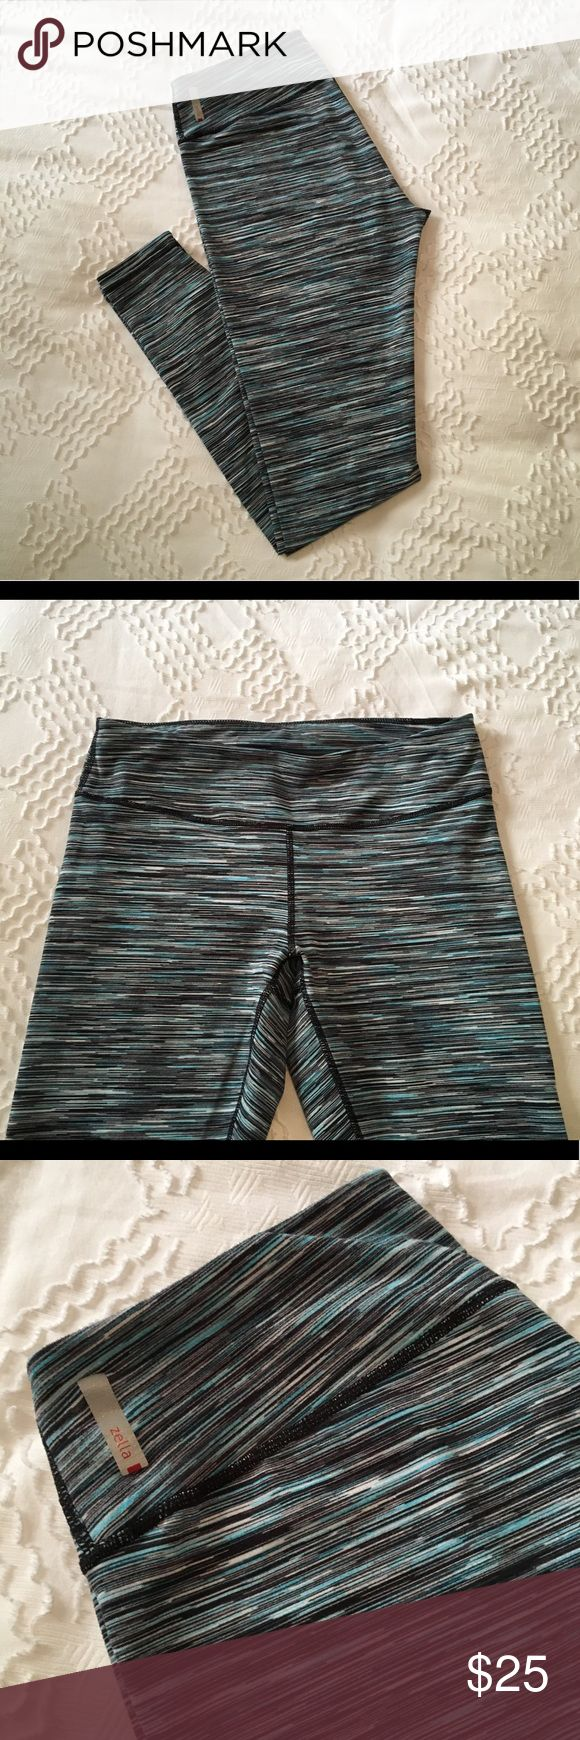 Zella Live In Leggings Zella Live In leggings. Light blue, navy, and white kinetic pattern. Perfect condition. Super comfortable, super flattering! Zella Pants Leggings